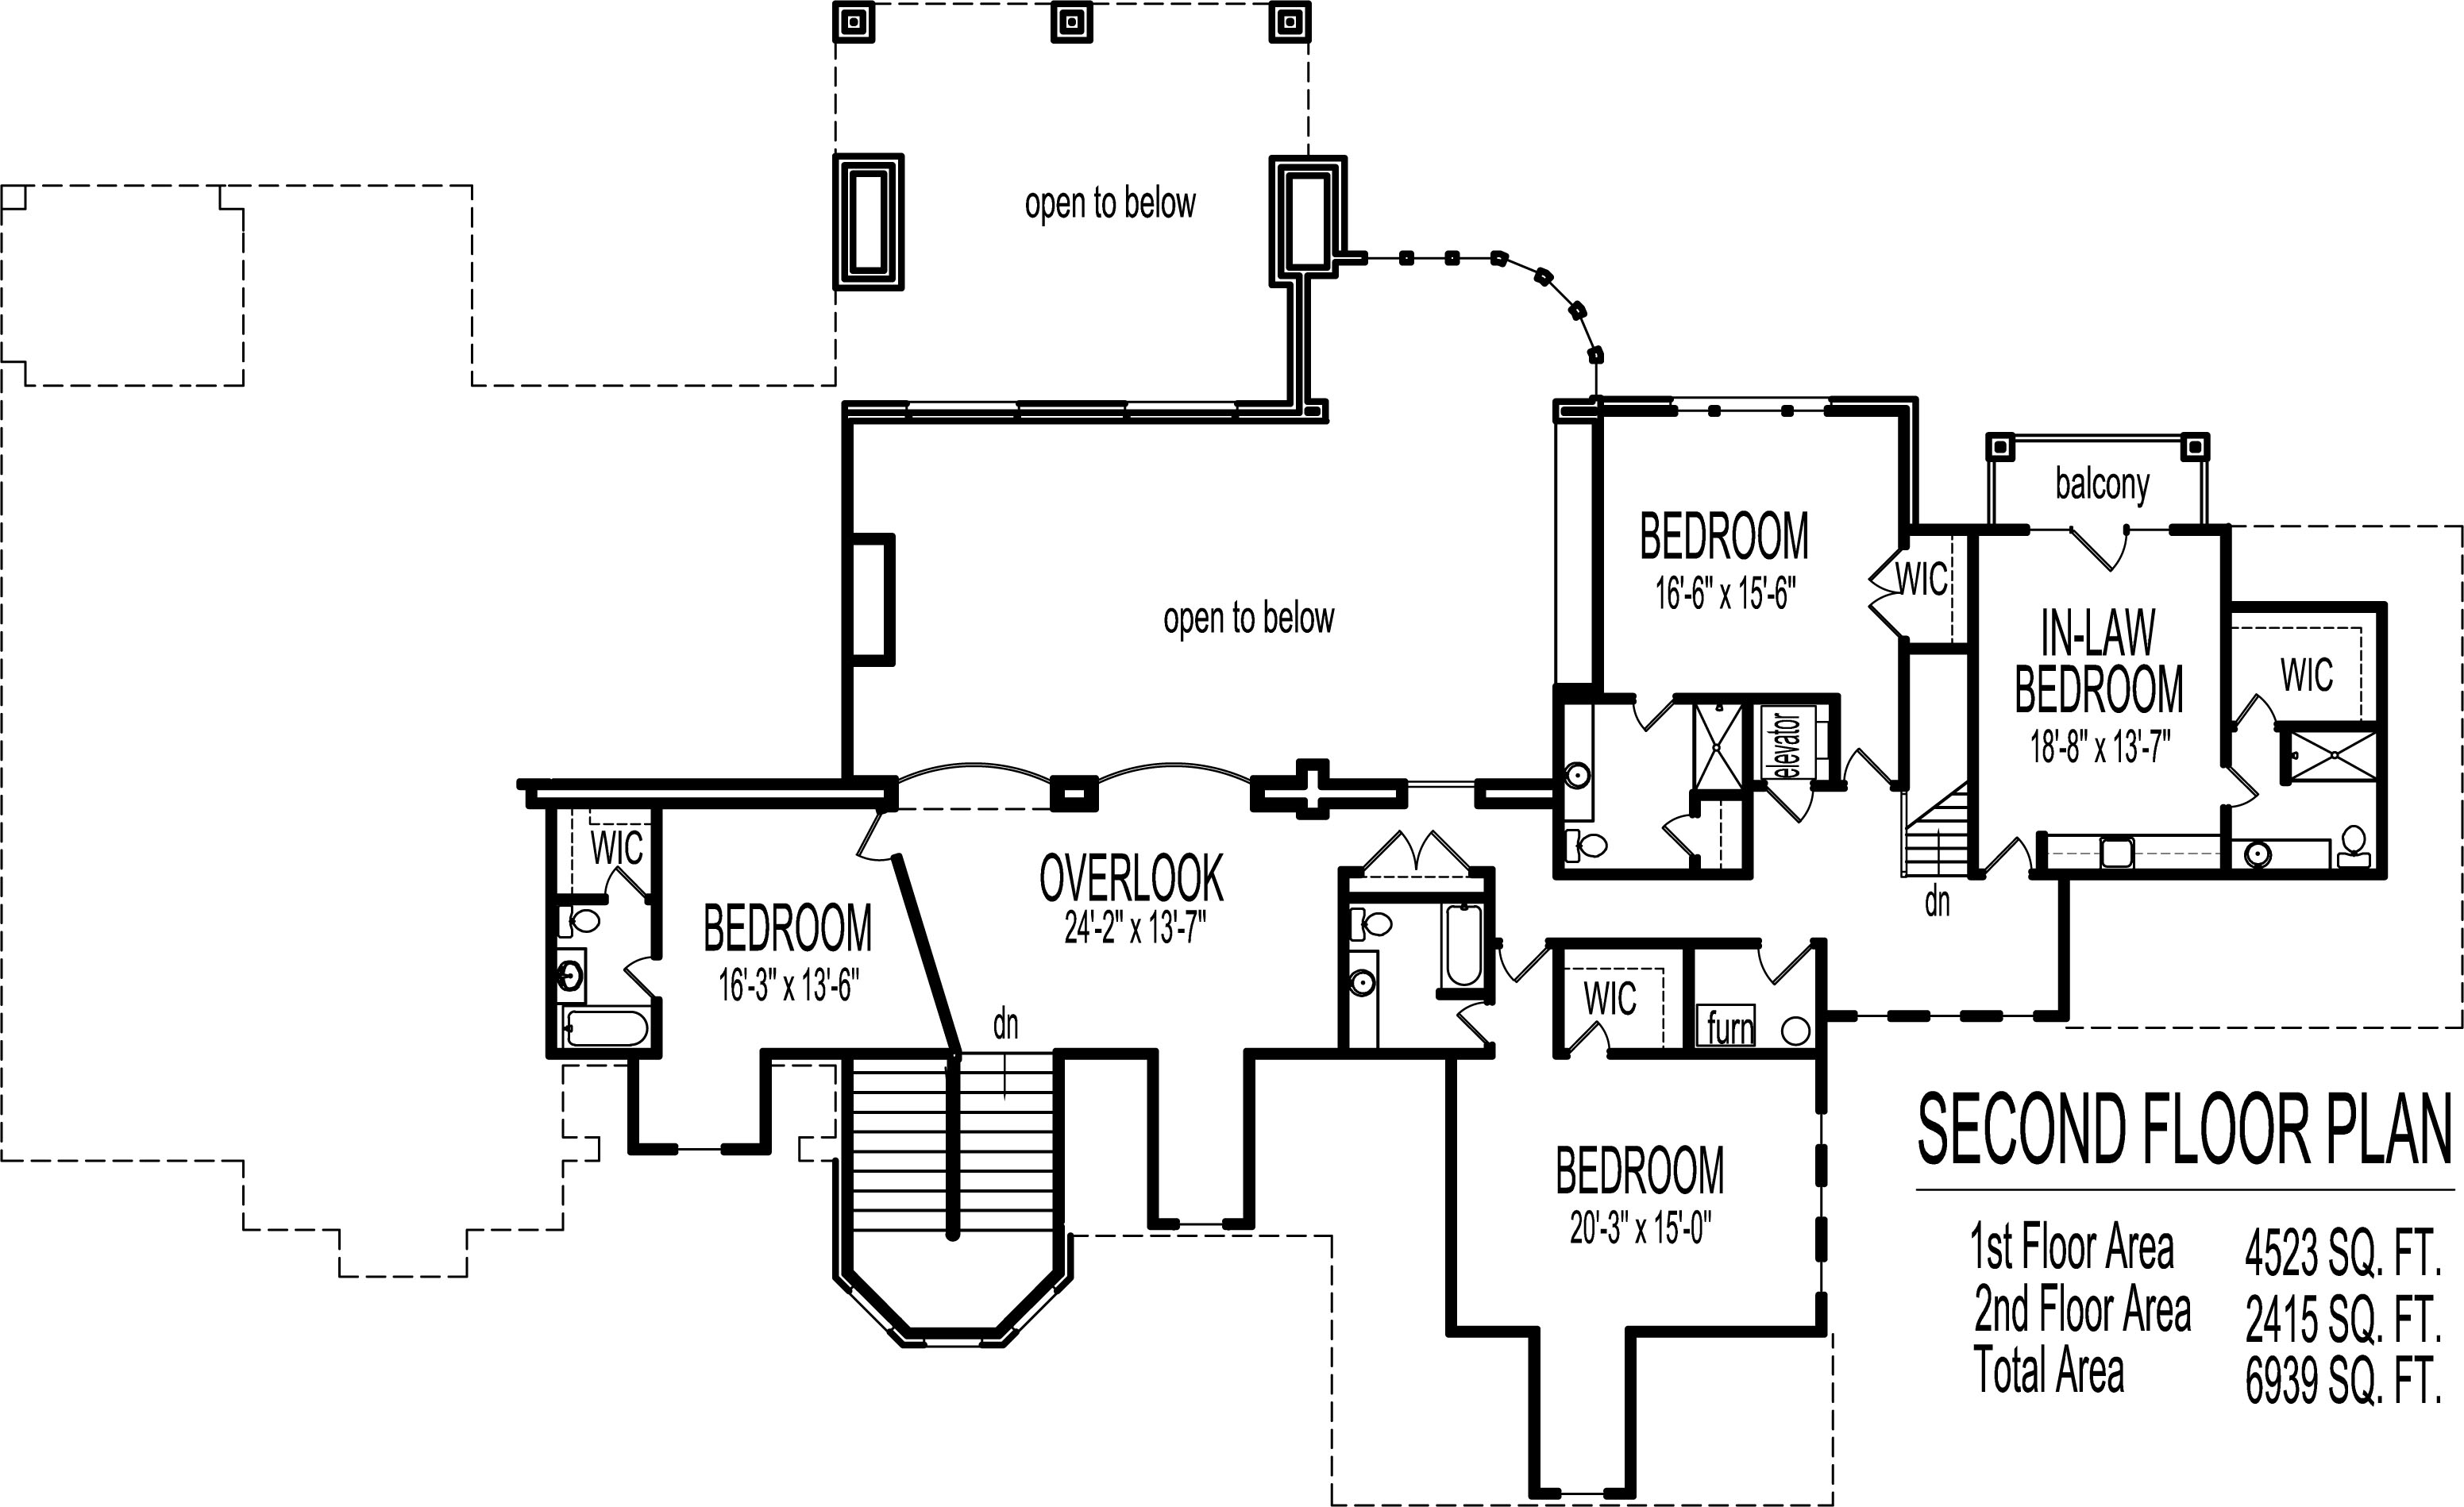 5 bedroom 2 story dream house floor plans las vegas sunrise manor henderson nevada reno paradise